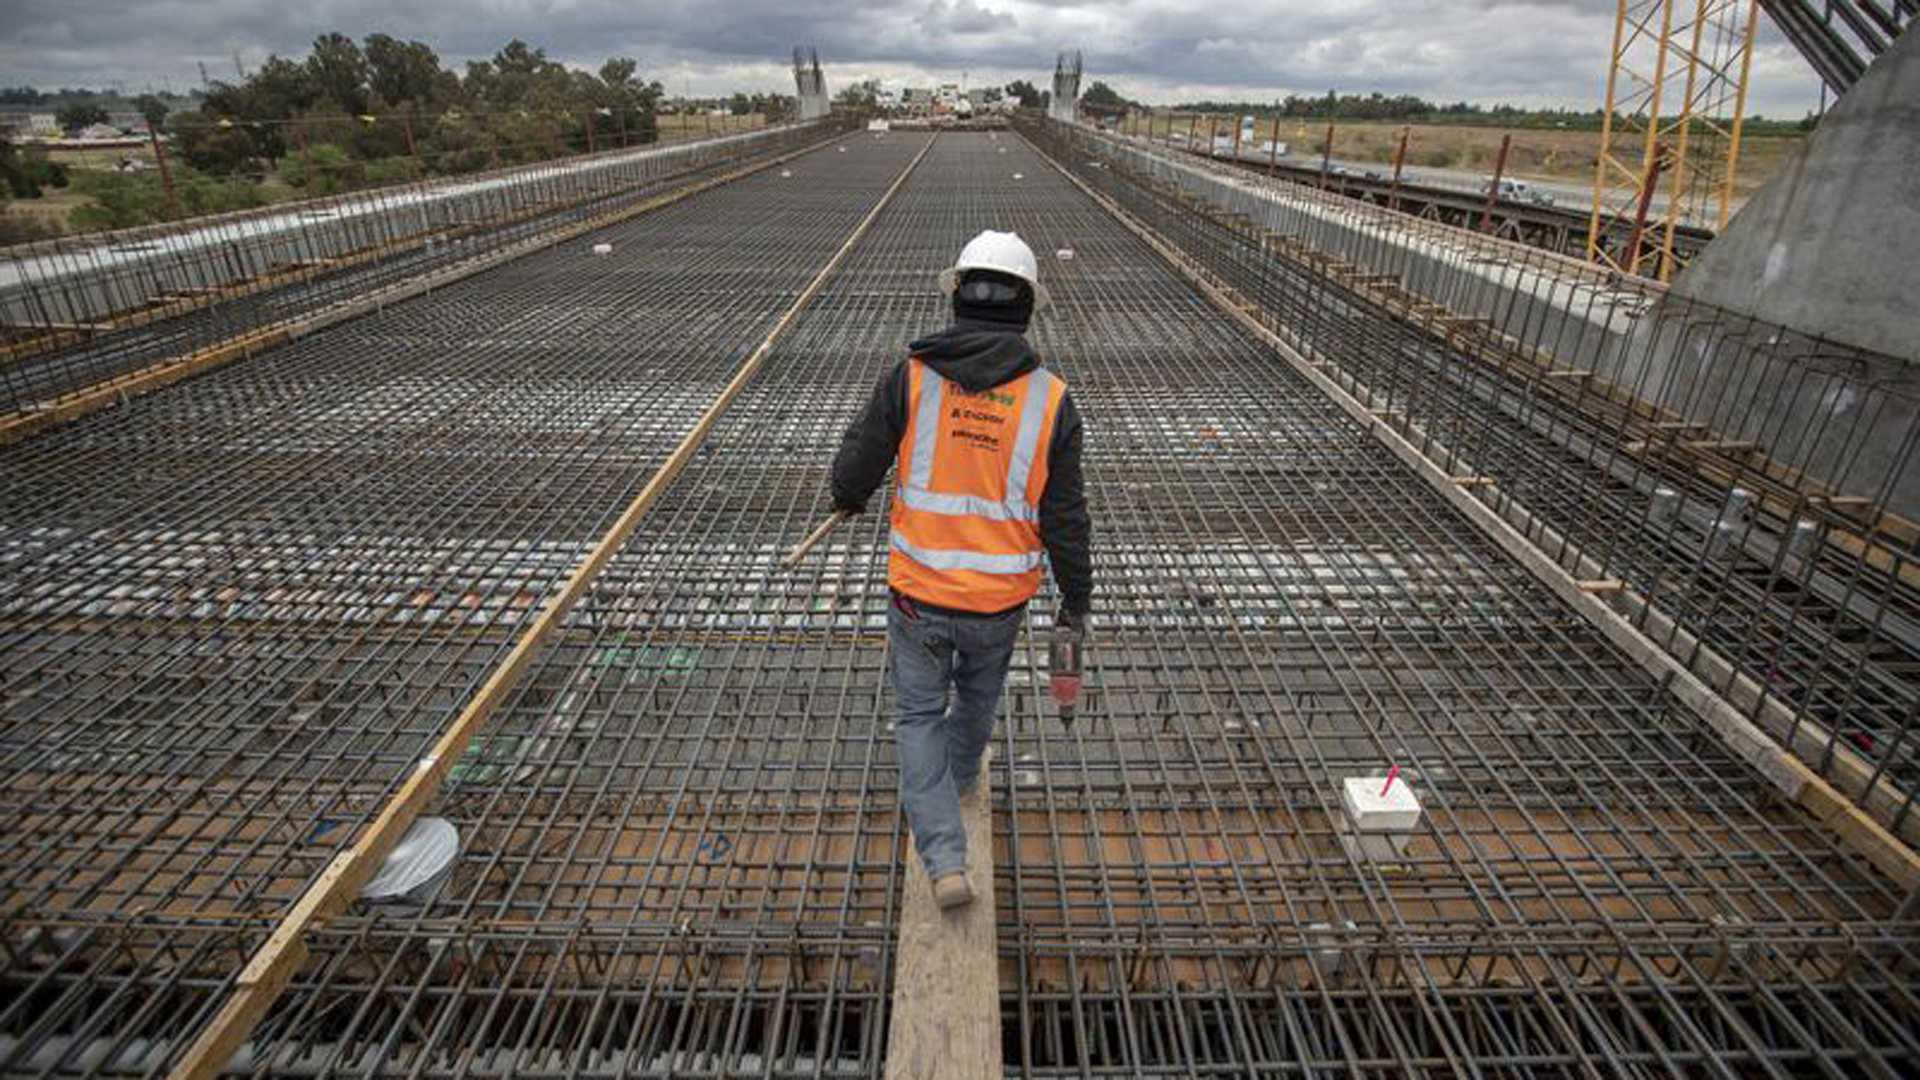 Construction continues on the San Joaquin River Viaduct section of the California high-speed rail project in North Fresno. (Credit: Robert Gauthier / Los Angeles Times)